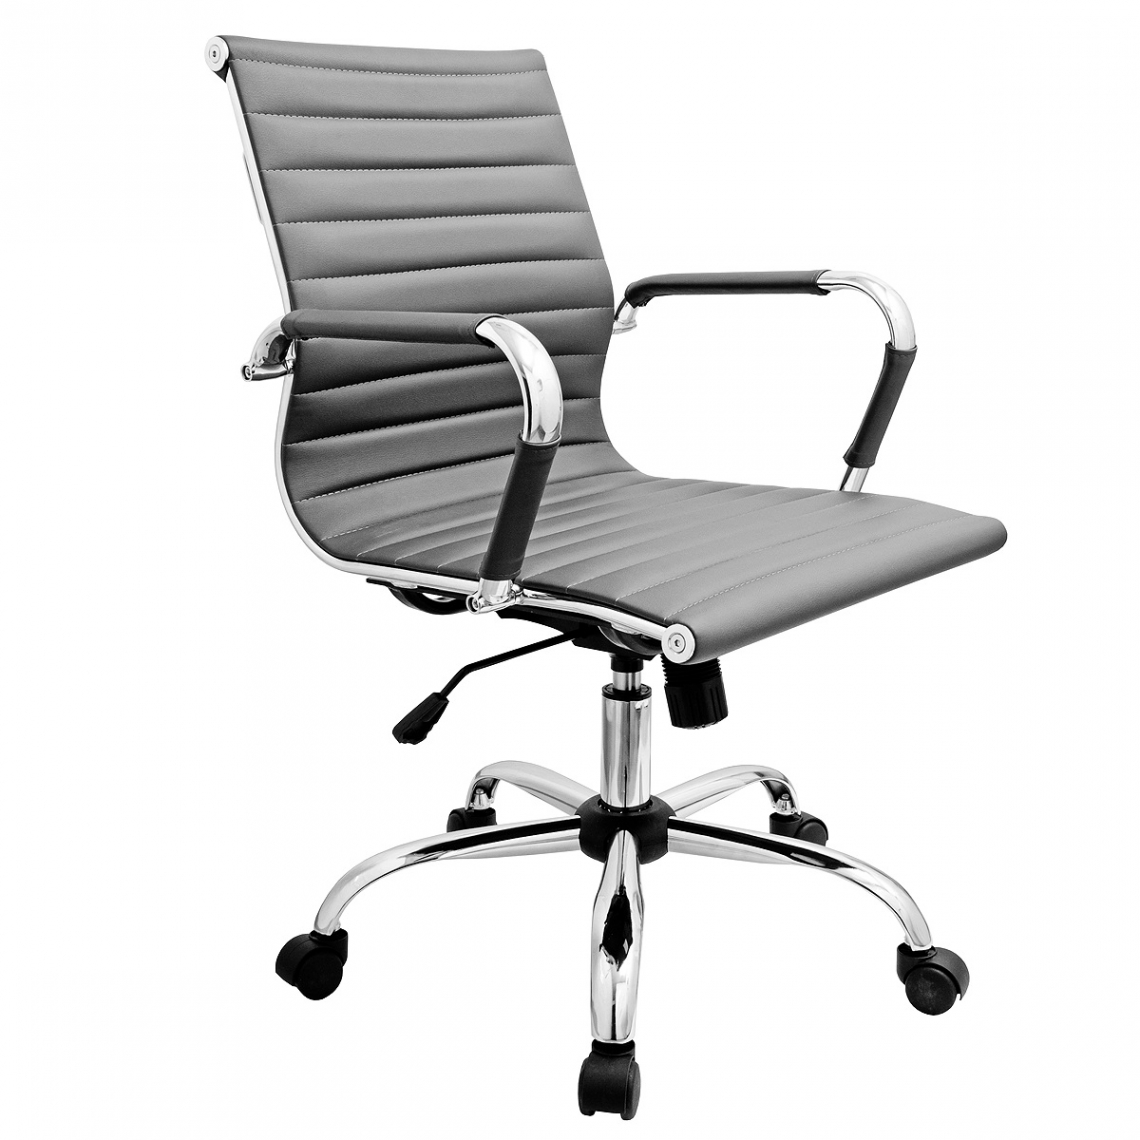 Easton Office Chair with Casters Grey